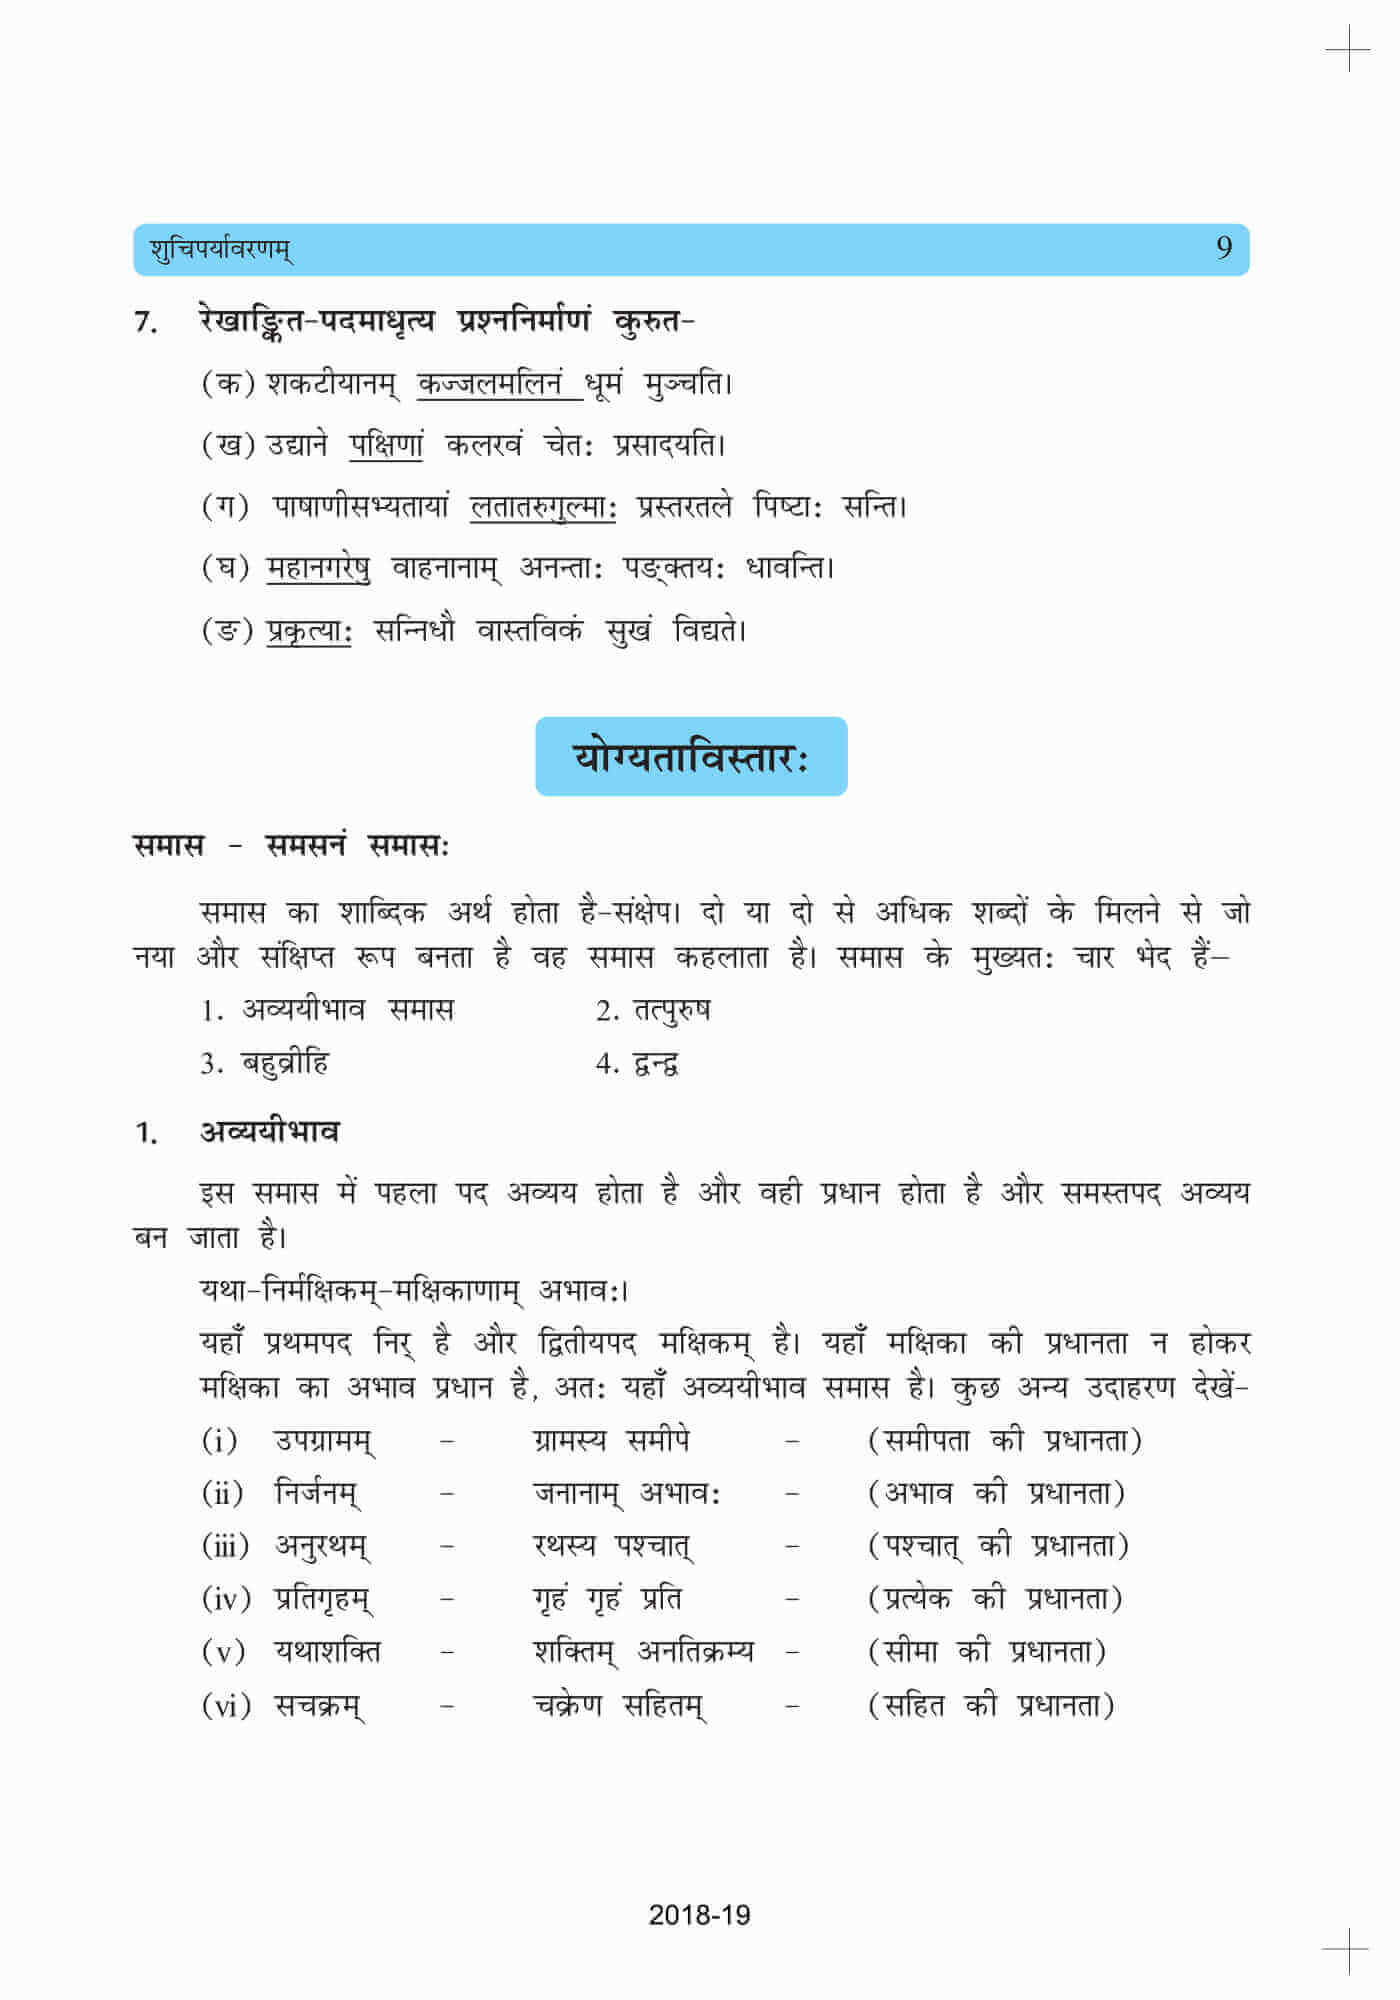 NCERT Solutions For Class 10 Sanskrit Shemushi Chapter 1